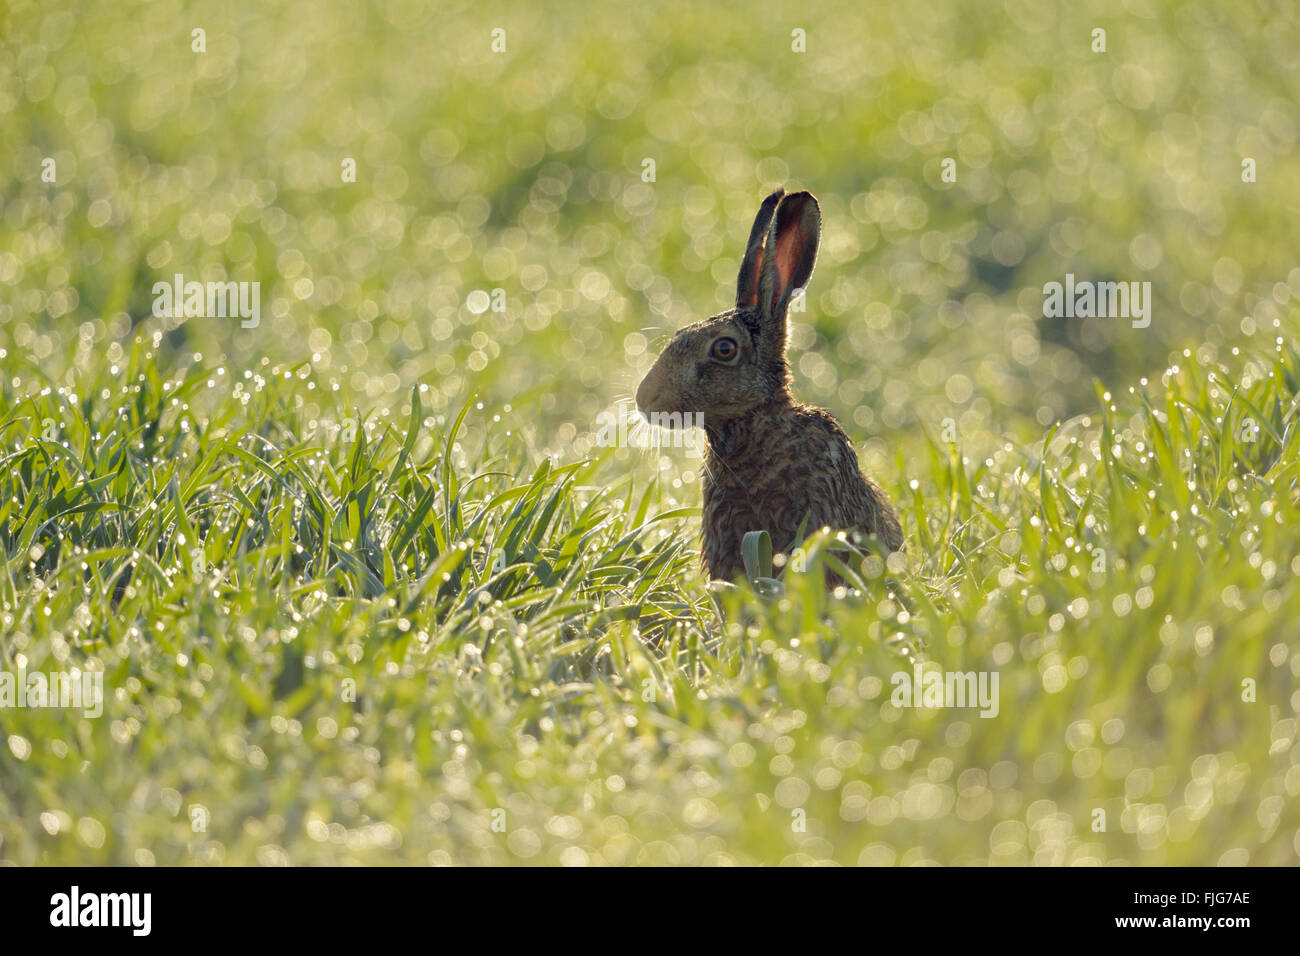 Brown Hare / European Hare / Feldhase ( Lepus europaeus ) sitting in a field of winter wheat, thousands of dewdrops - Stock Image